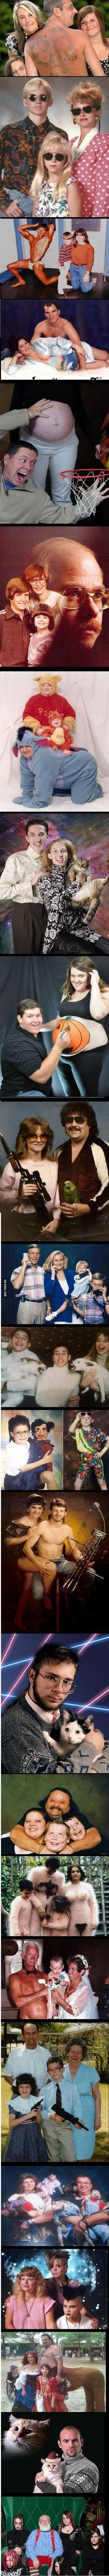 Just some awkward family photos/ these are so weird.